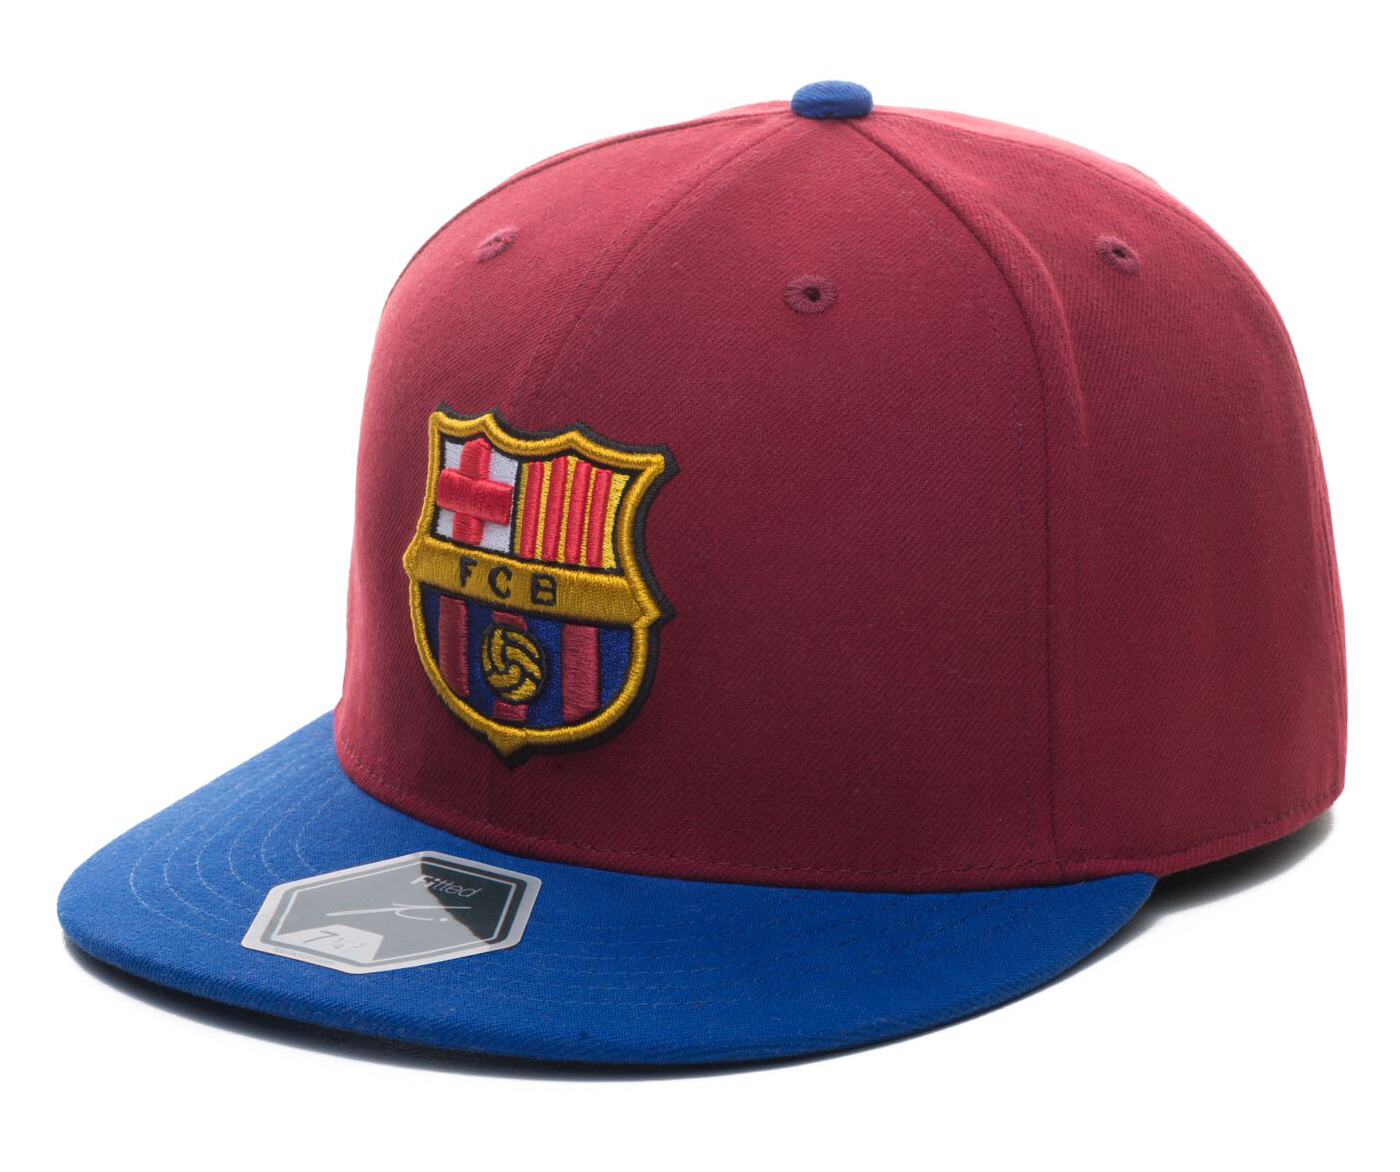 fc barcelona fitted team hat by fi collection 7d96a88b66d